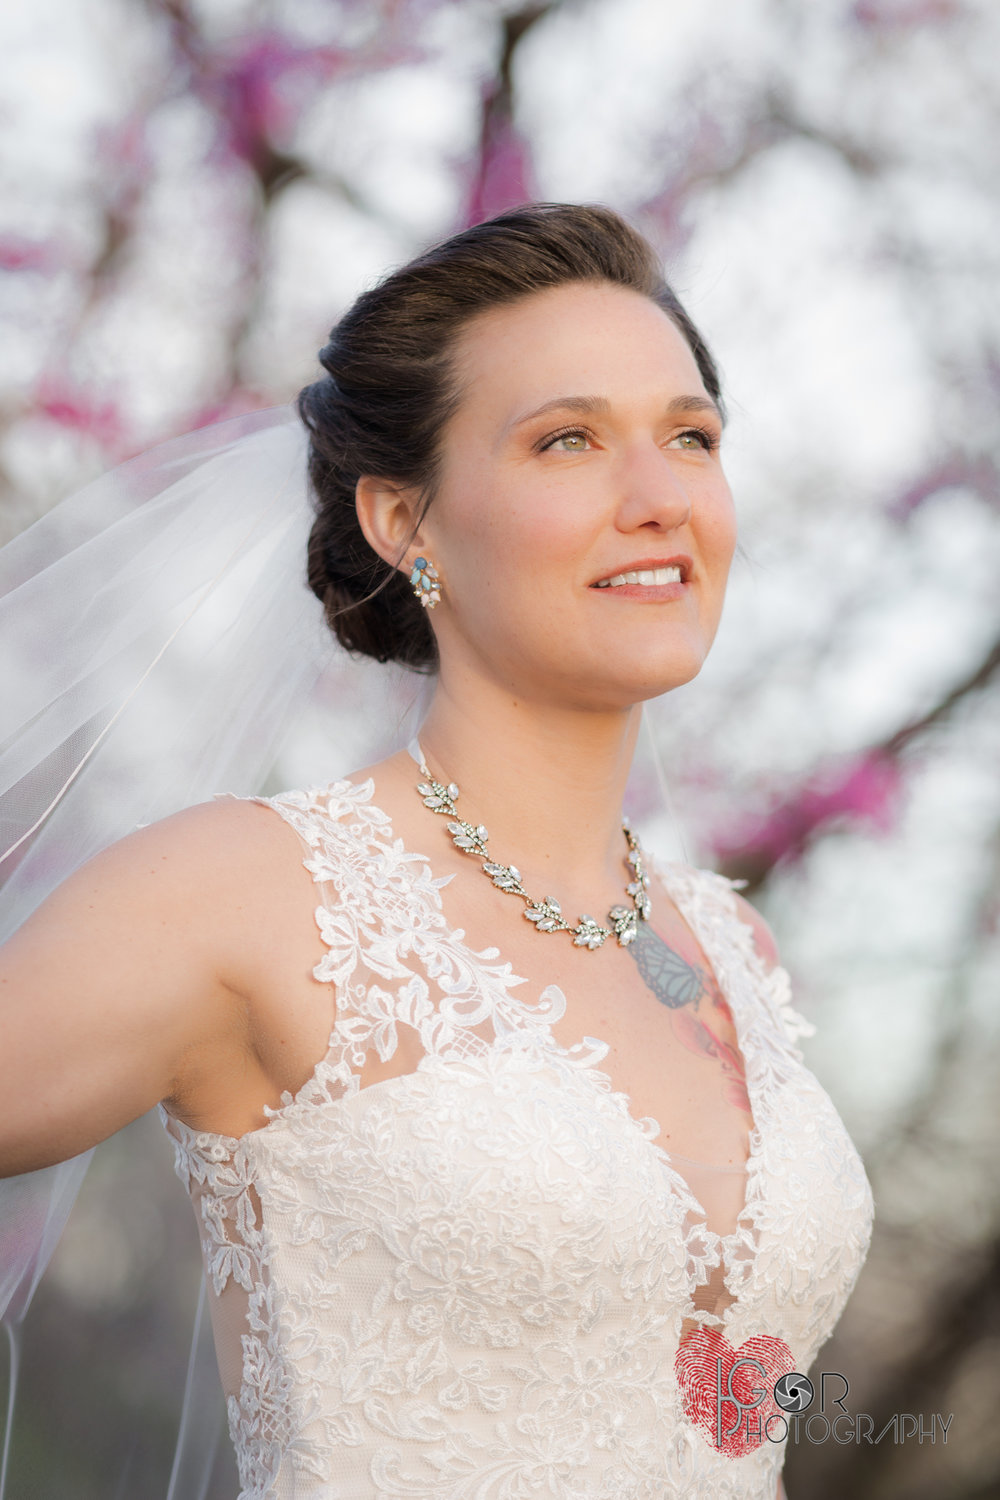 Plano bridal photography